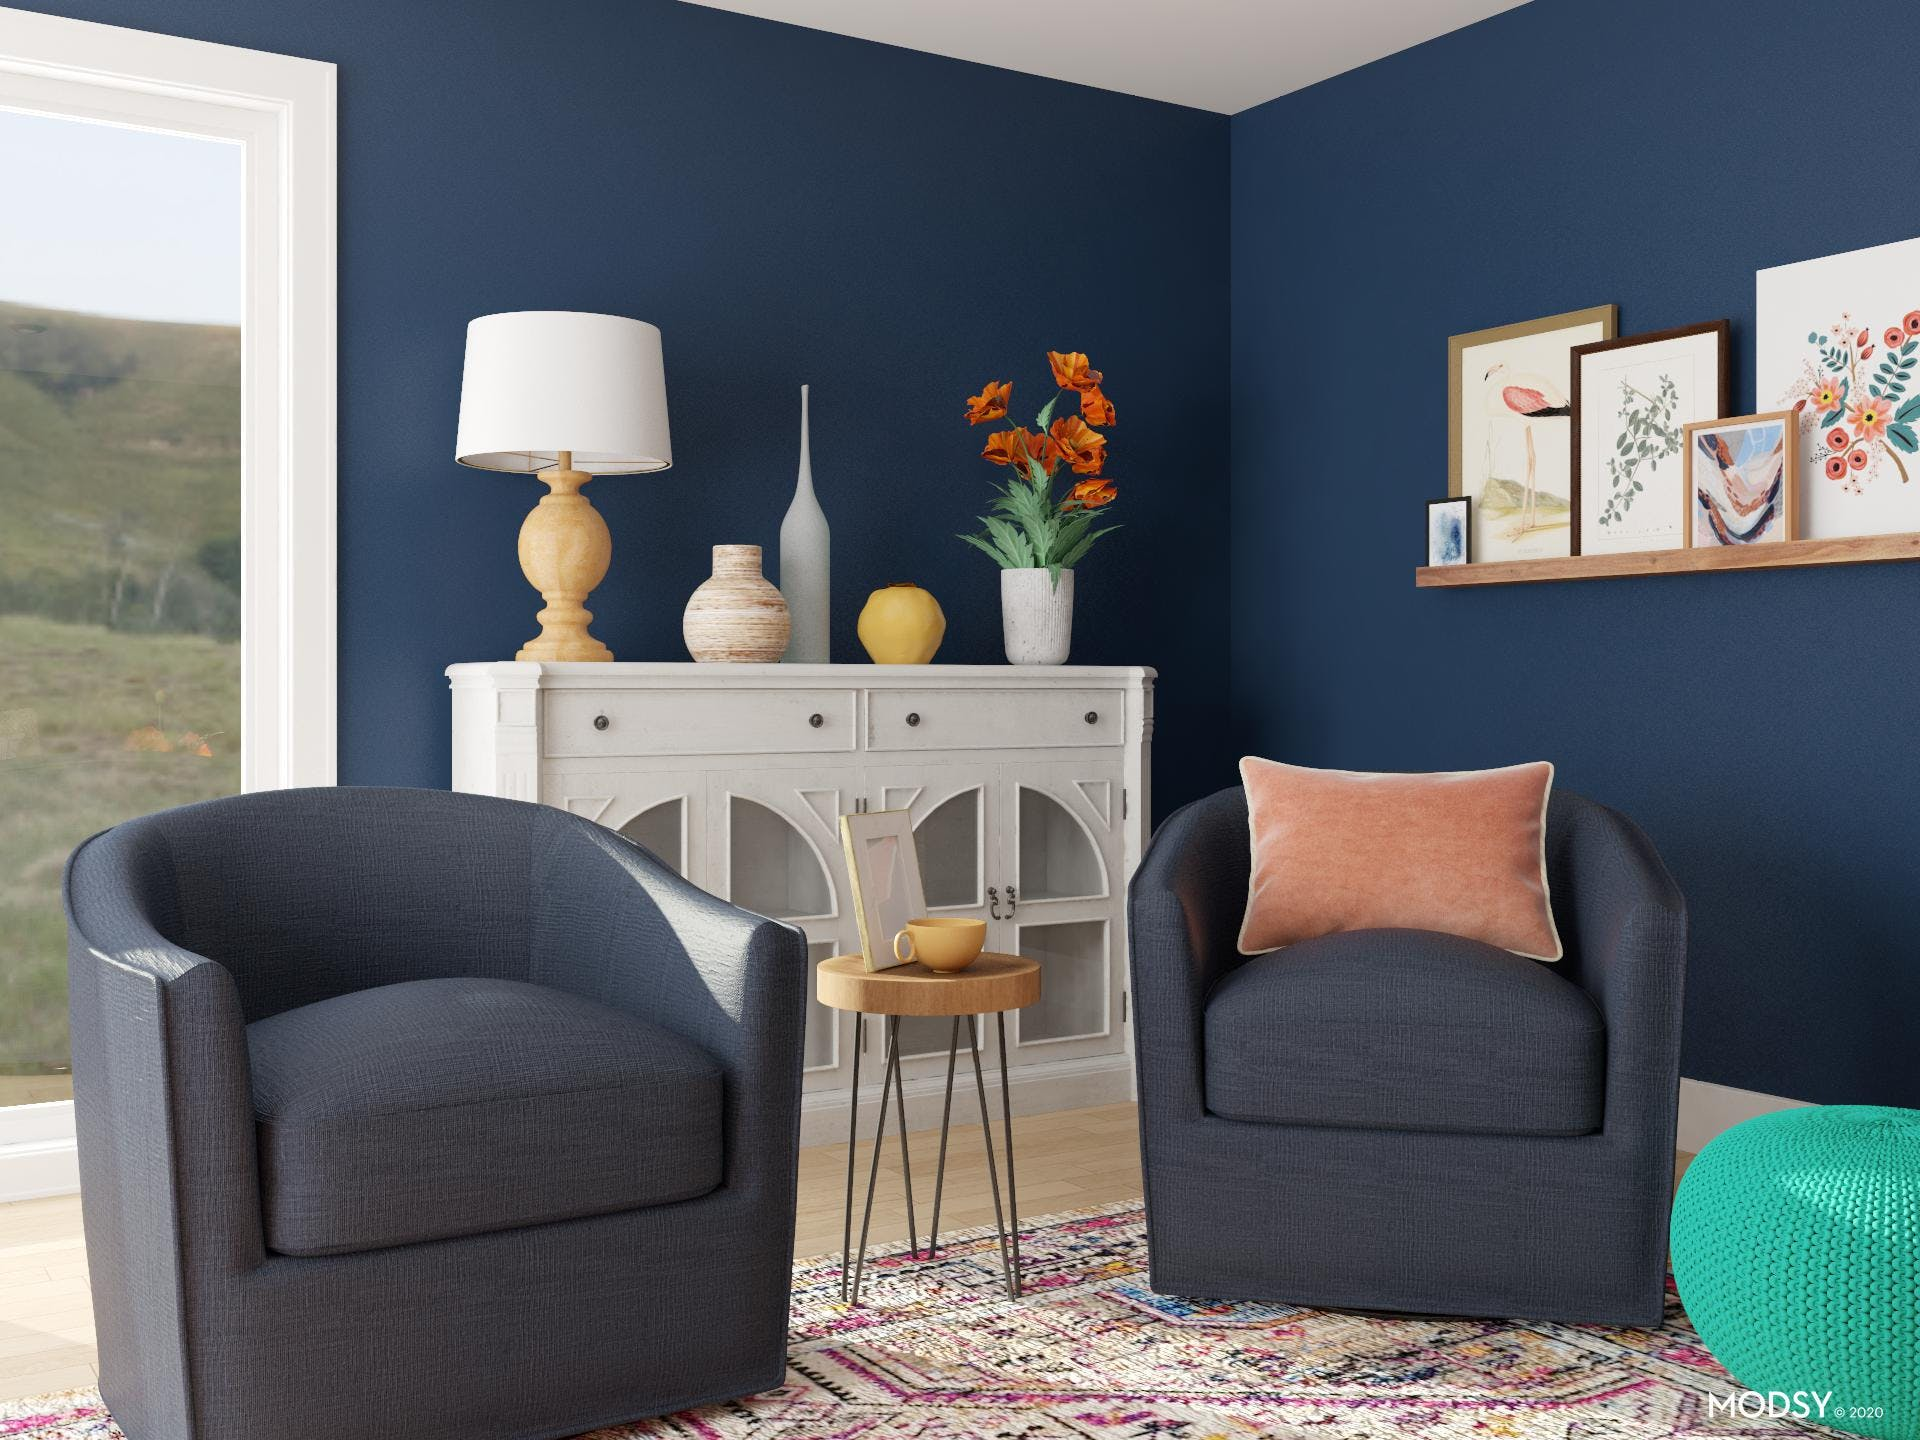 The Perfect View: Conversational Seating